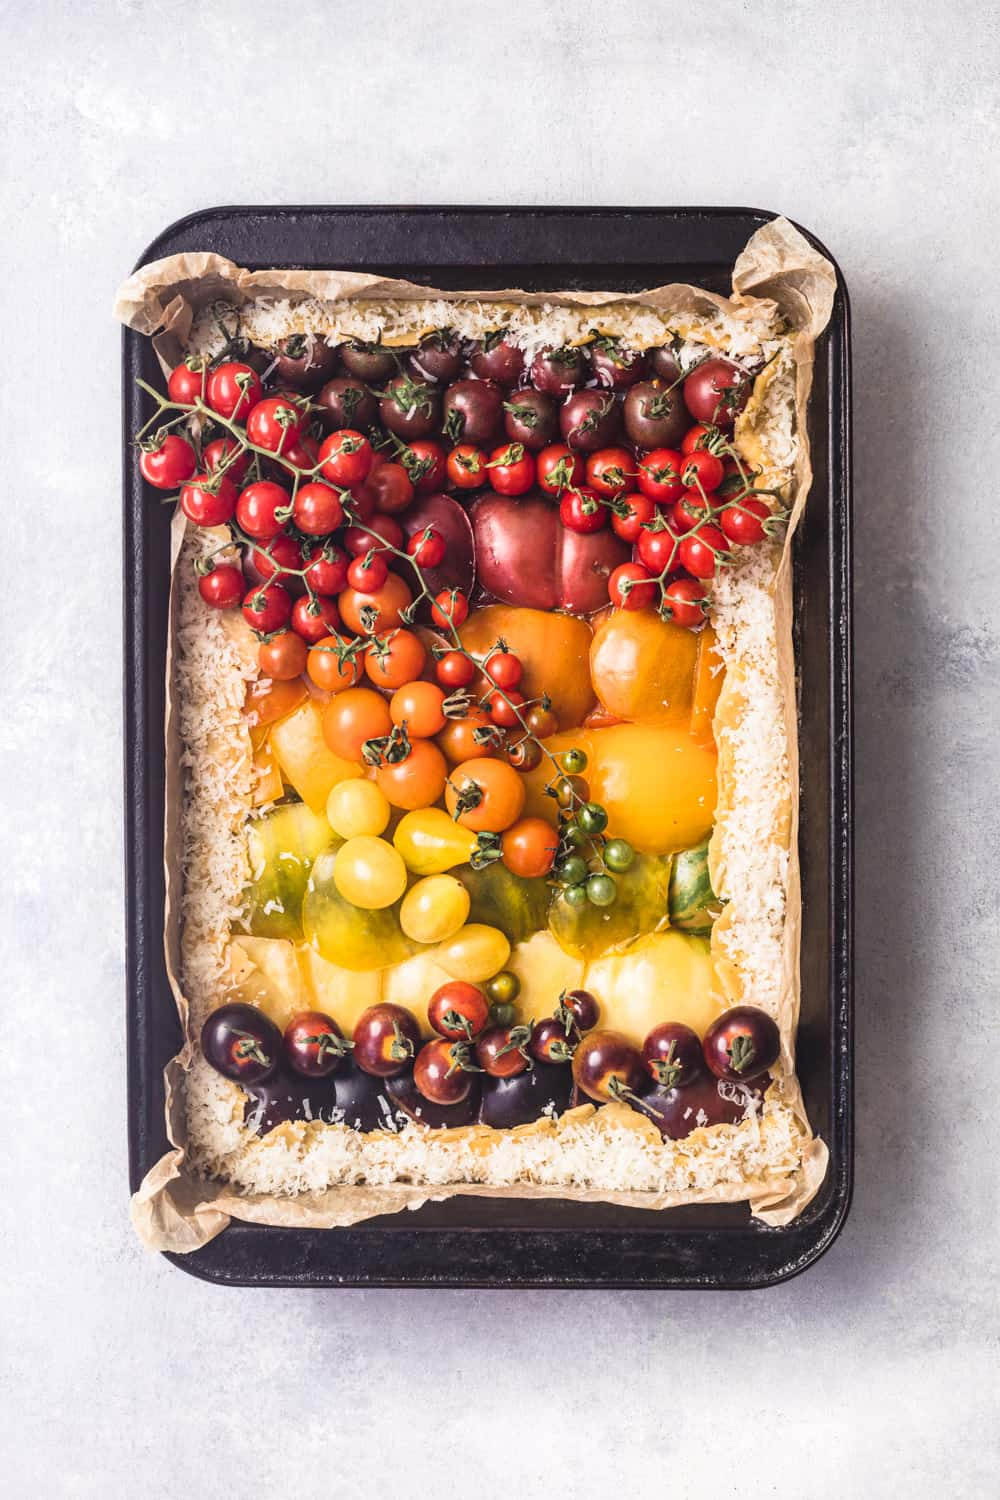 An heirloom rainbow tomato tart! Pre-oven, overhead shot, on a white background.